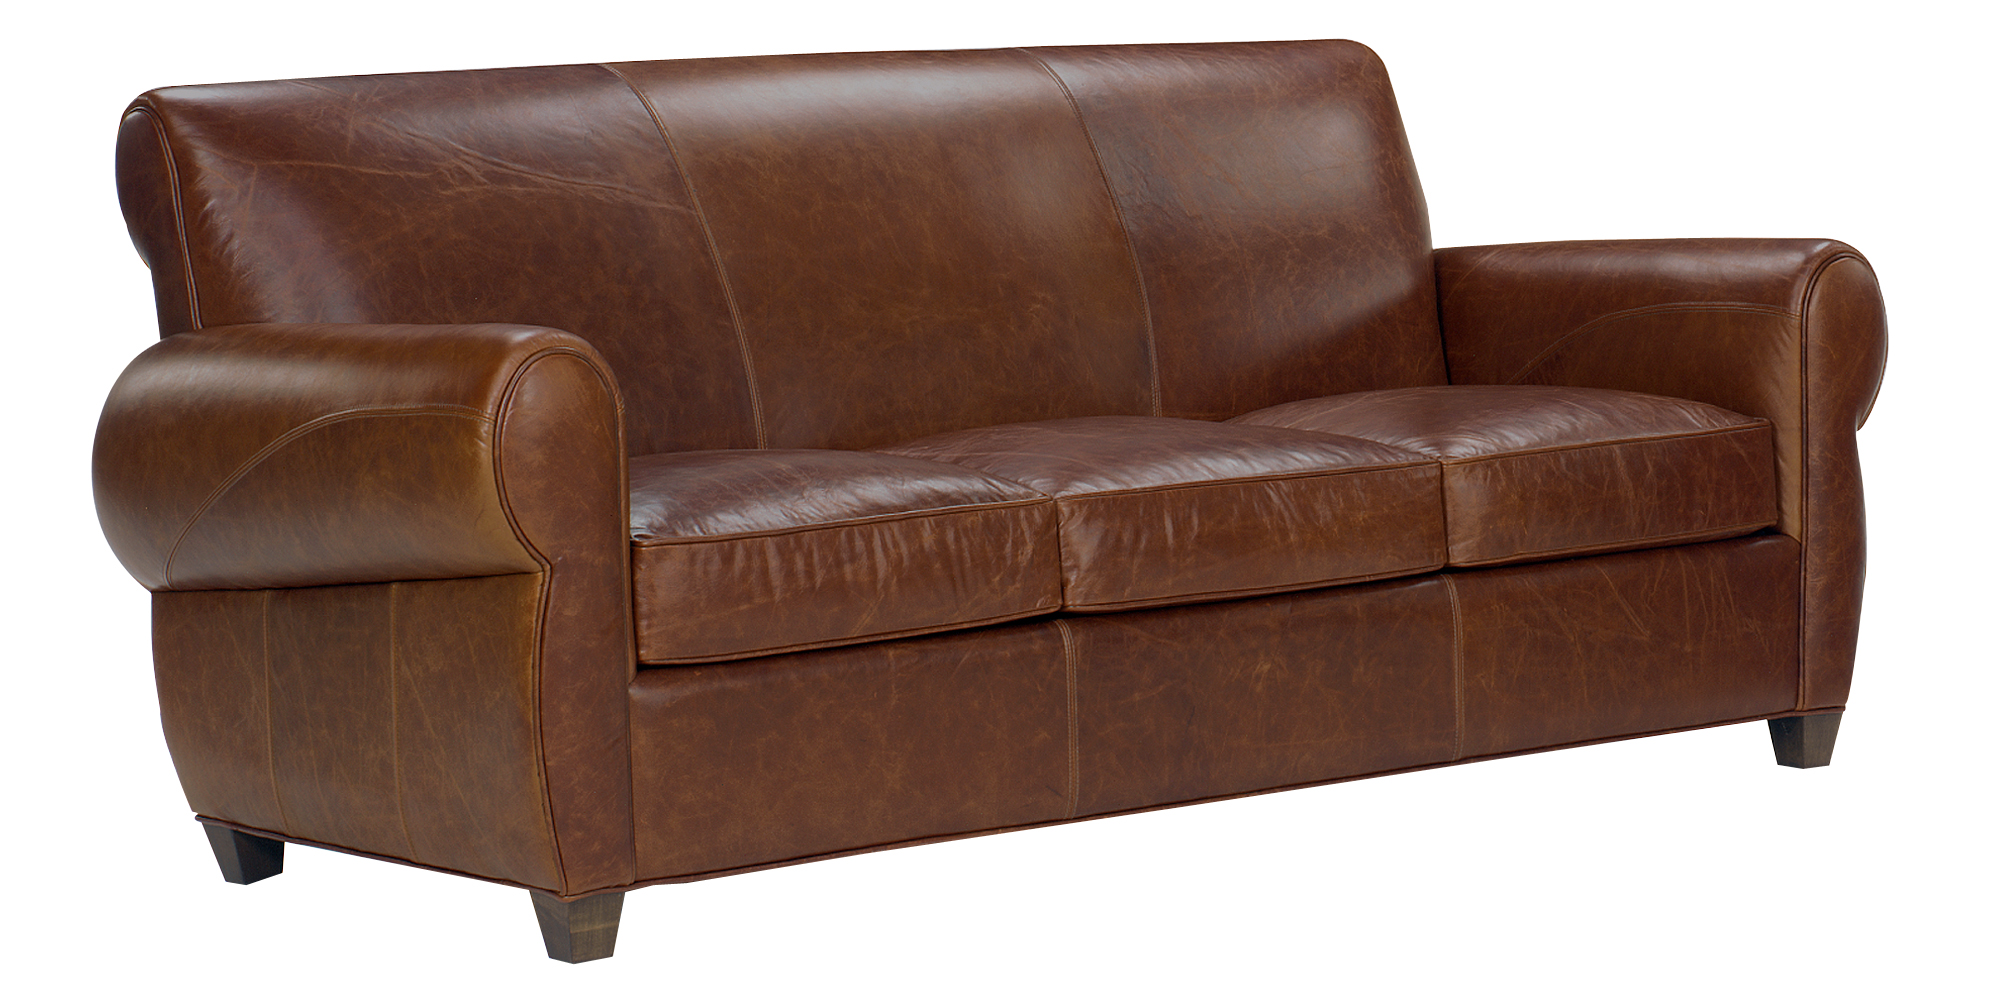 Couch Furniture Rustic Leather Sofa Roselawnlutheran